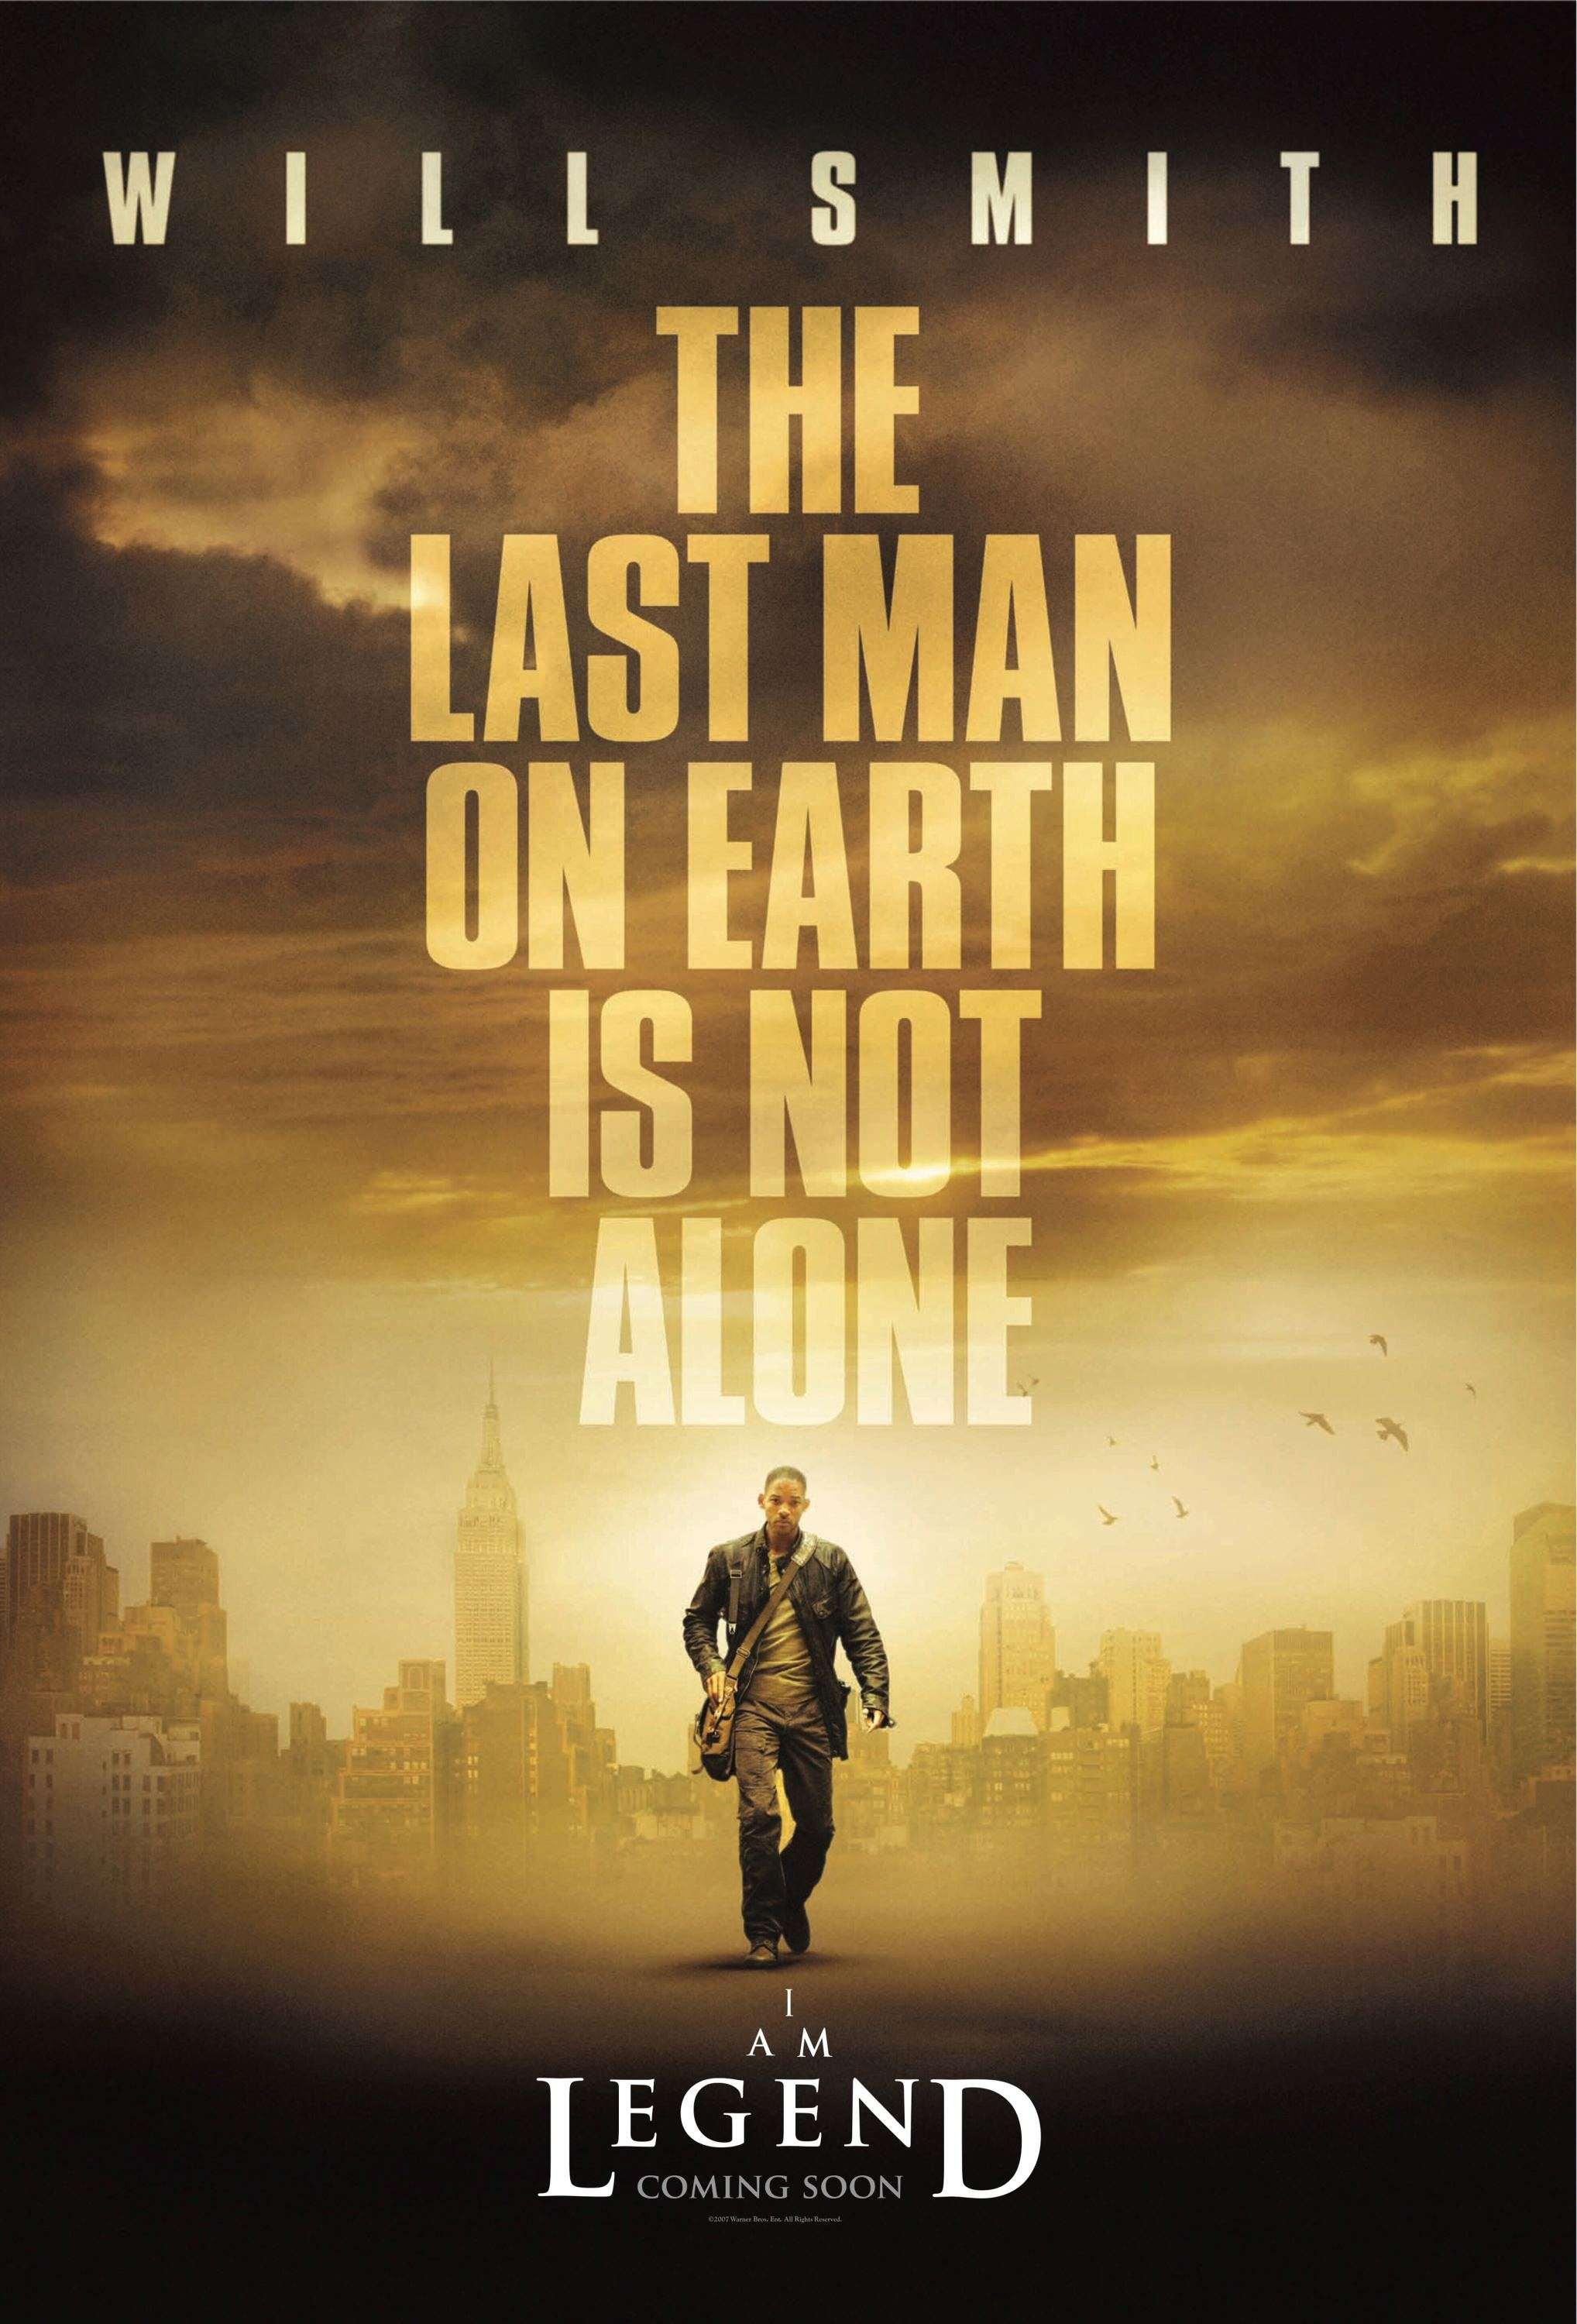 i am legend fil review Remarkably eerie yet annoyingly larded with cheap horror-film shock effects, i am legend stands as an effective but also irksome adaptation of film review.